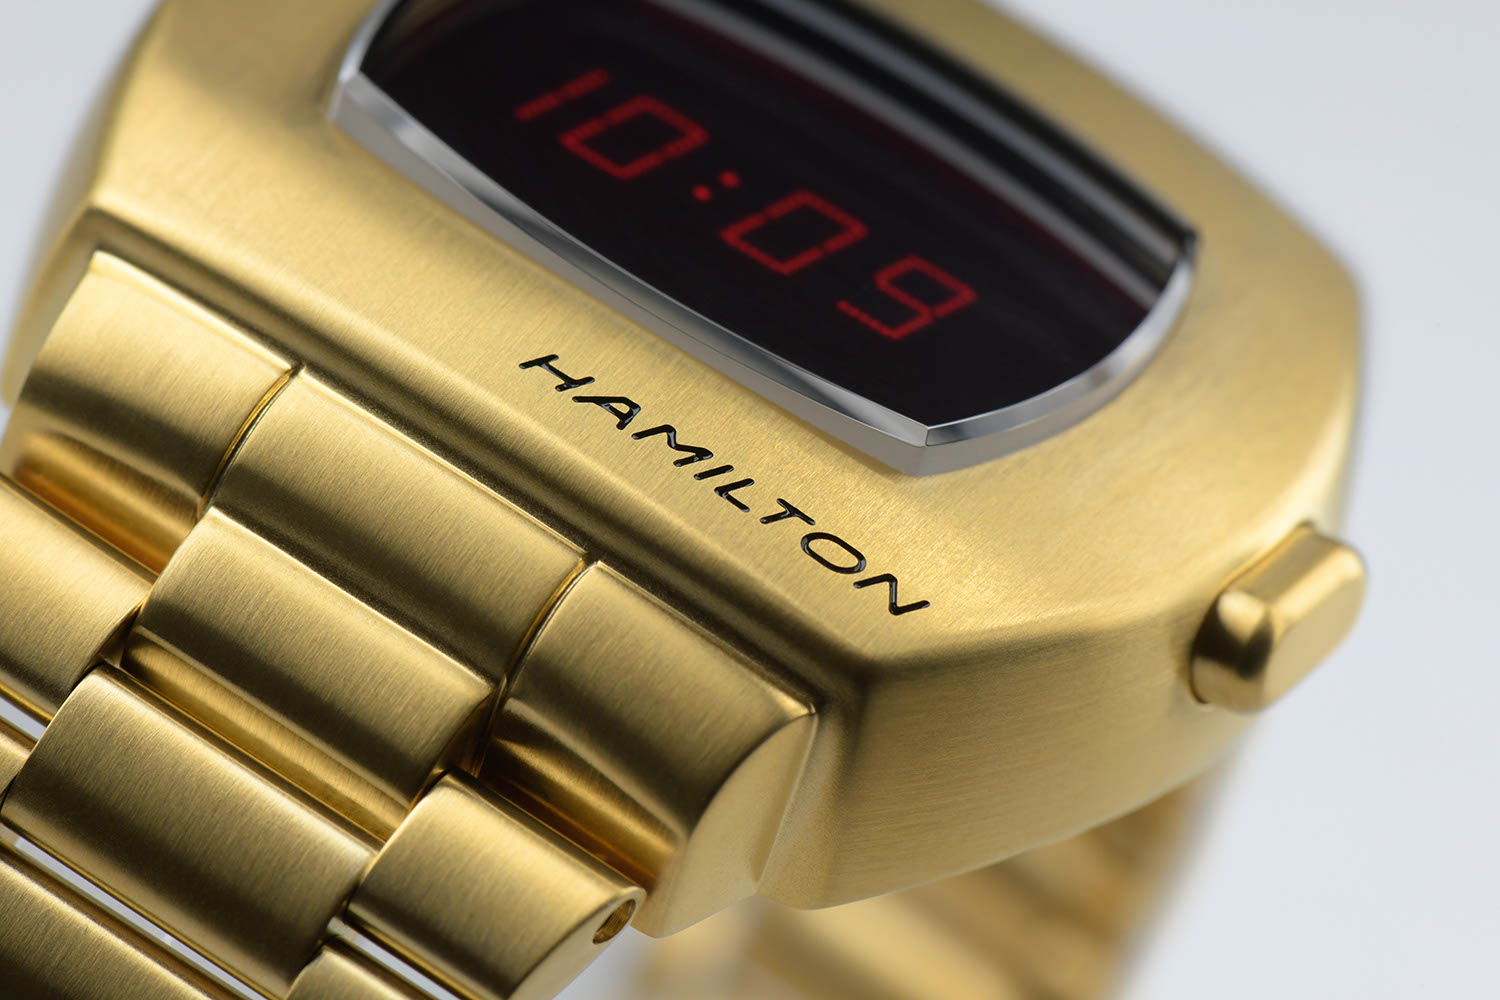 Hamilton Pulsar 2020 in Stainless Steel with Yellow Gold PVD Coating